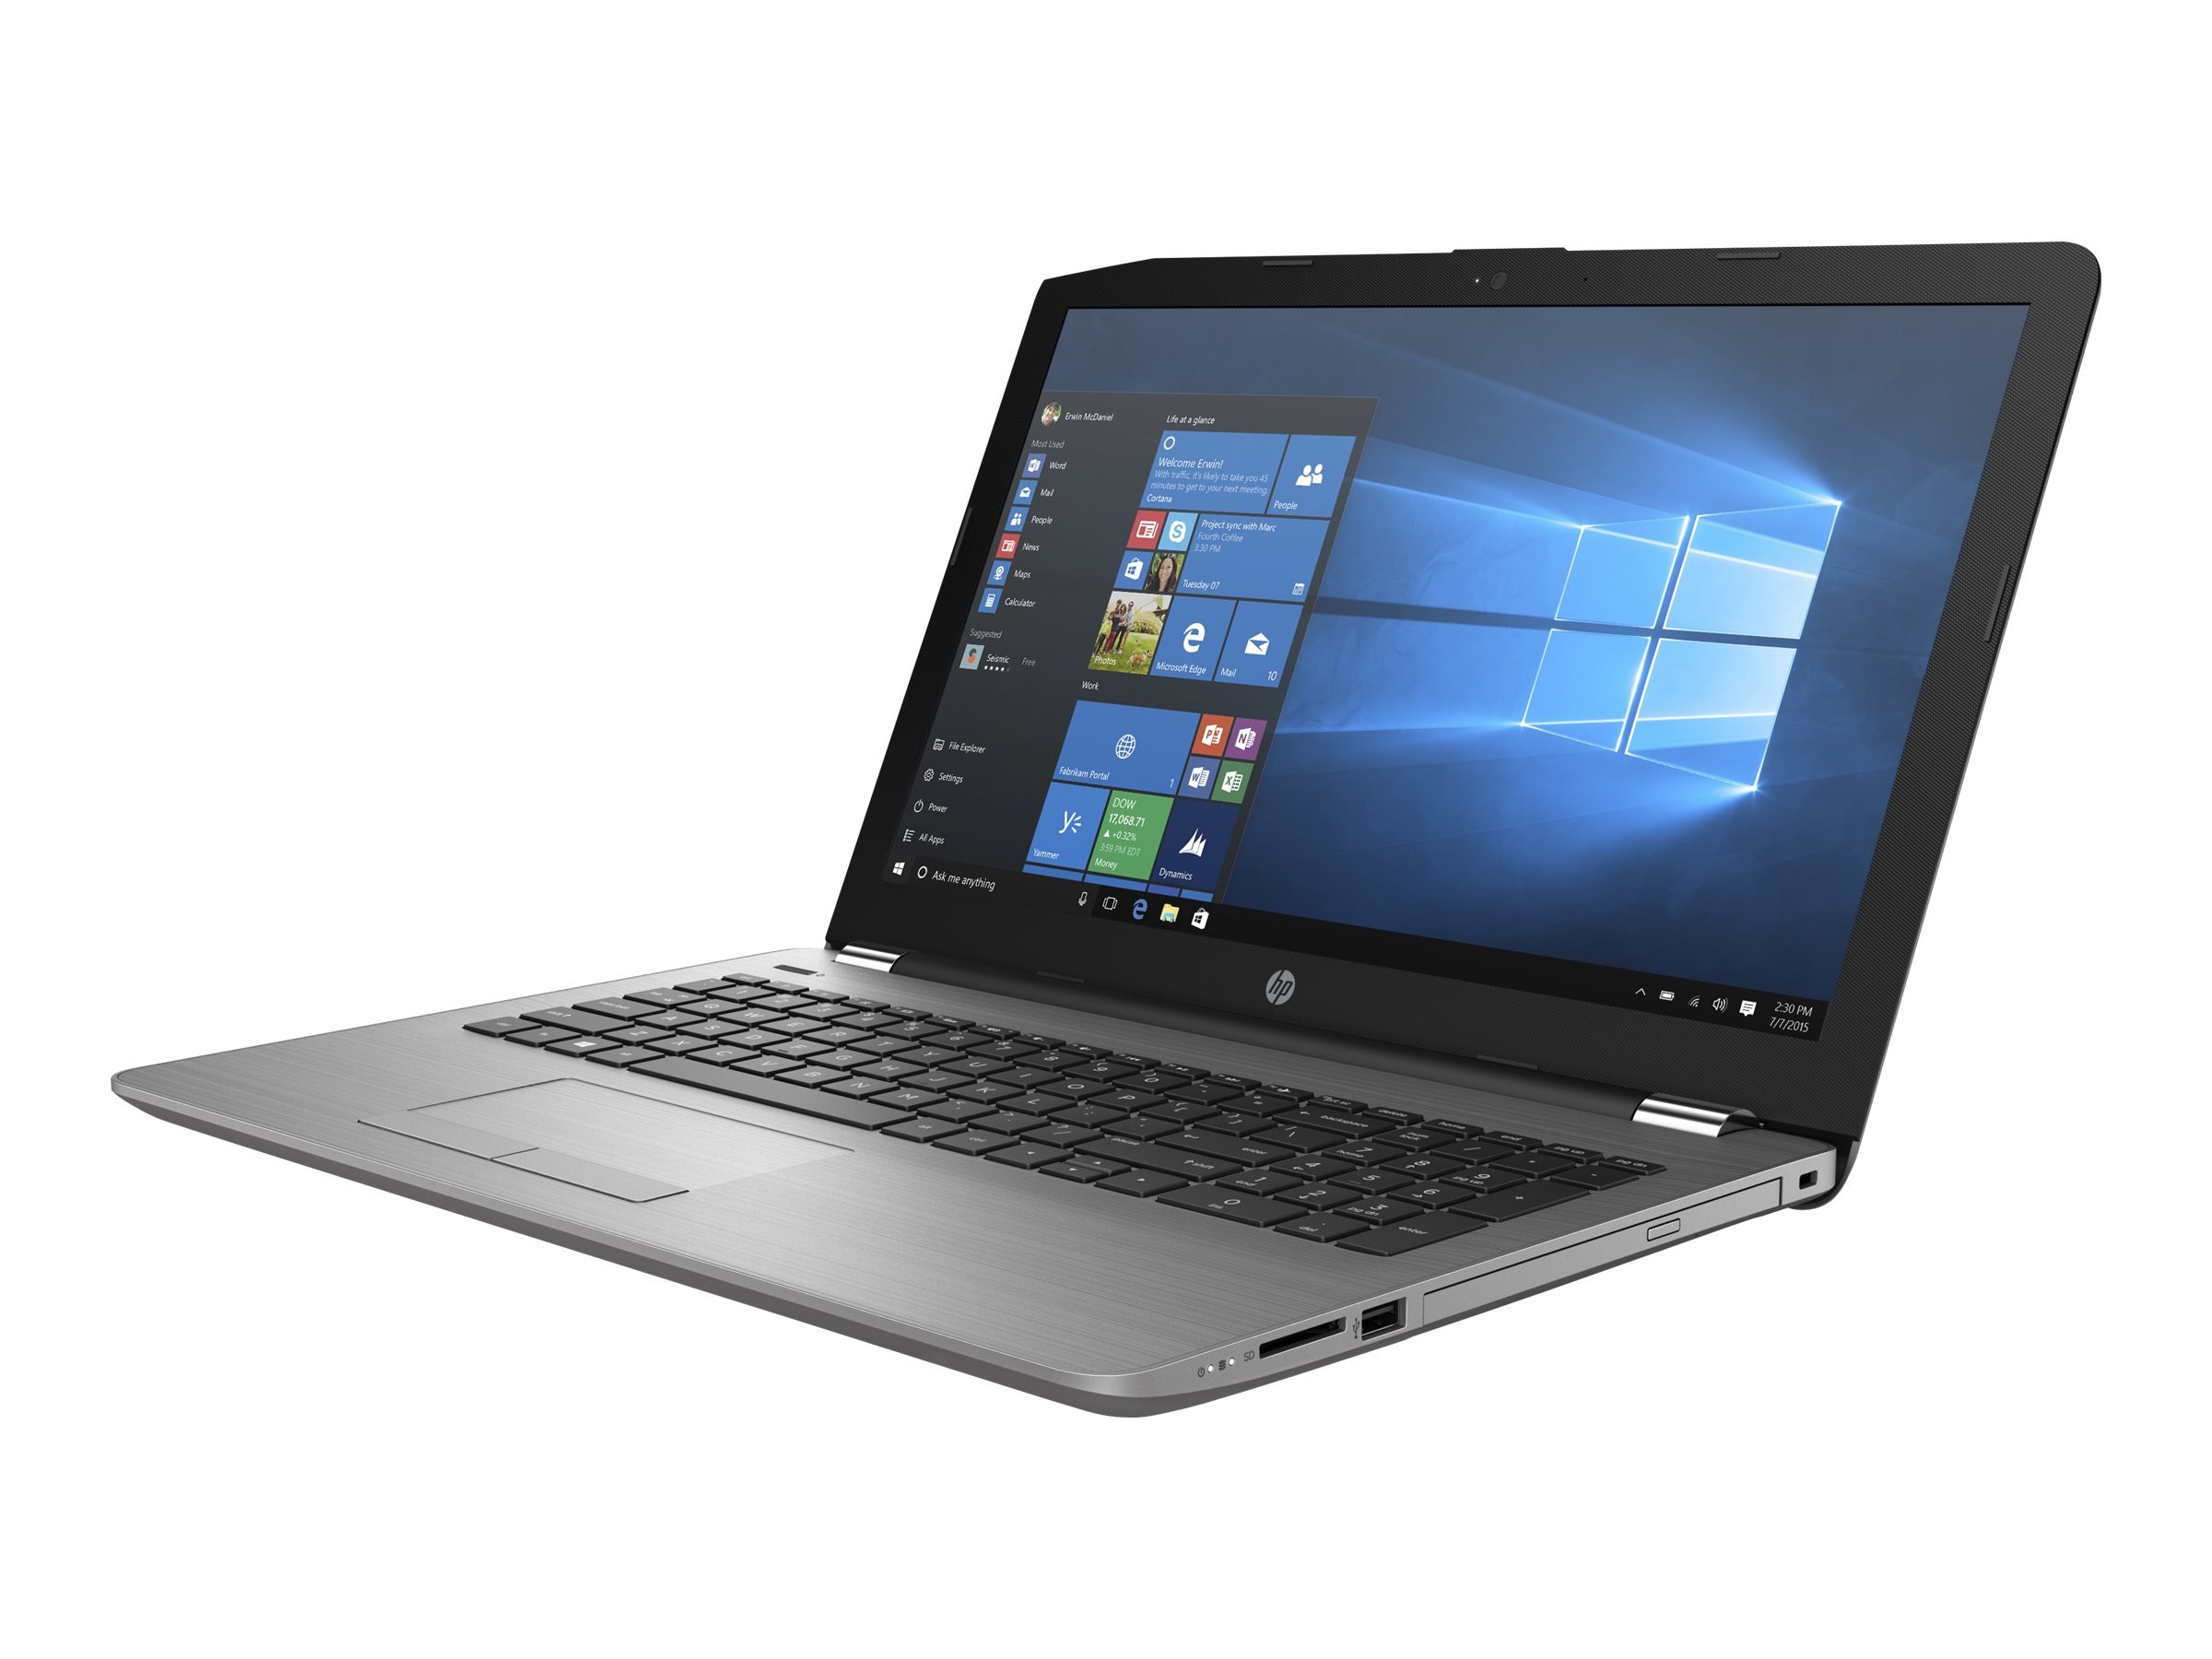 HP 250 G6 2.5GHz Core i5 15.6in display